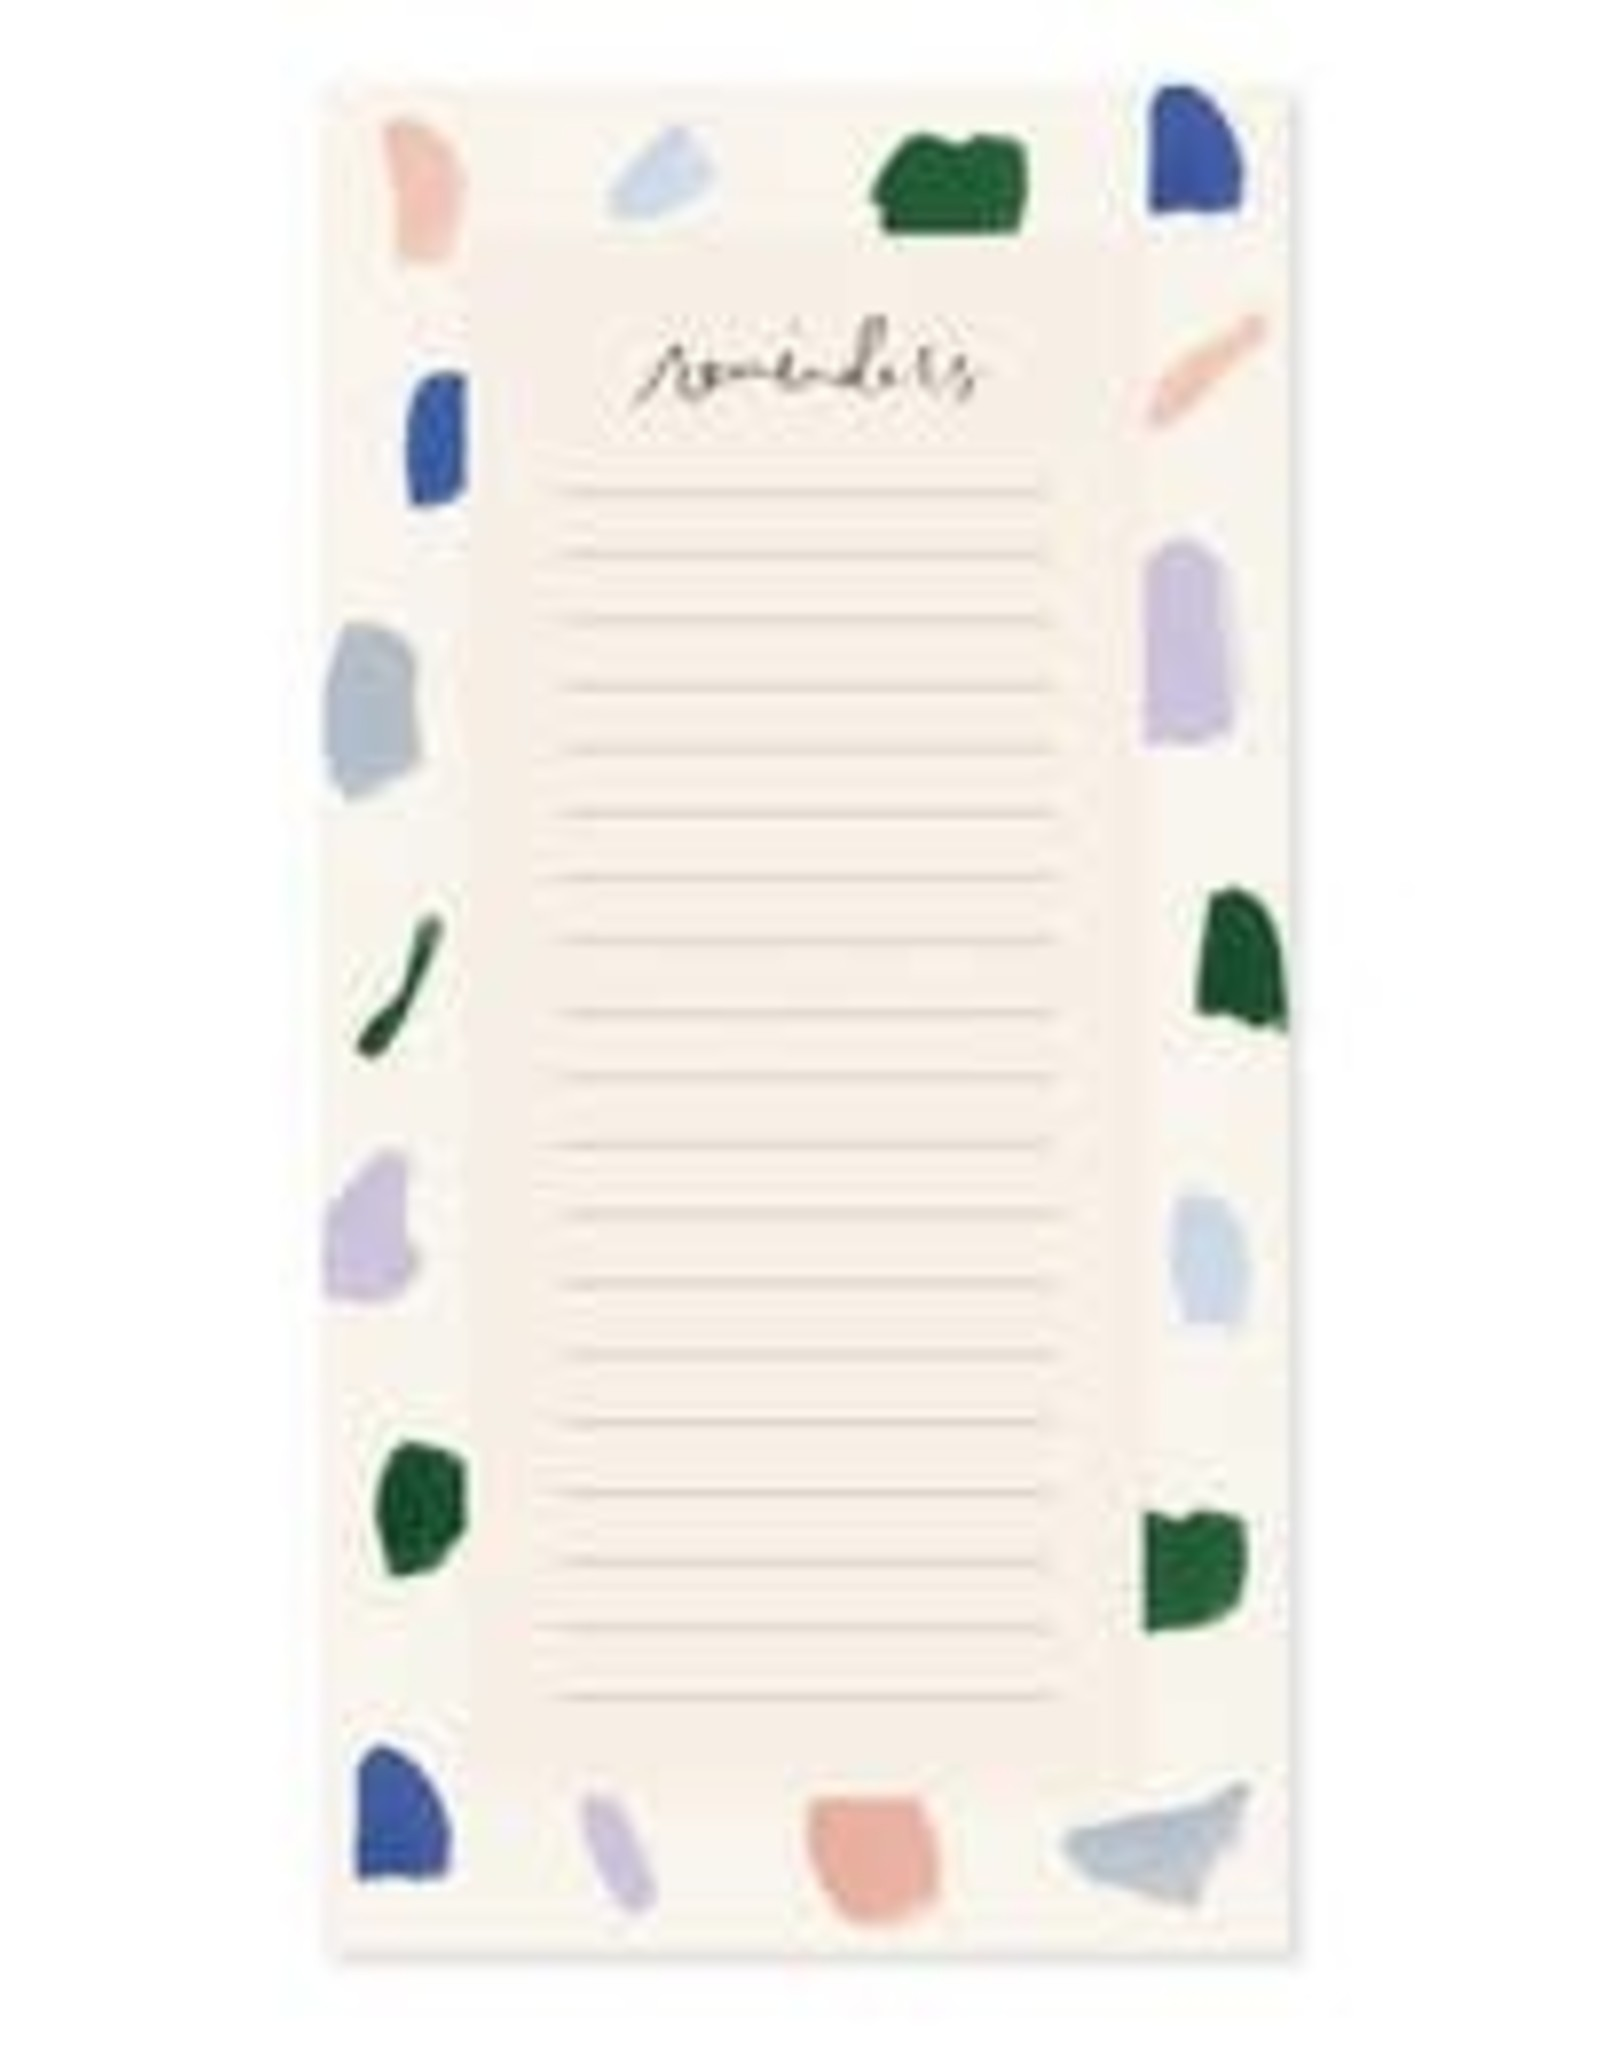 Our Heiday Our Heiday | Strokes Reminder Pad